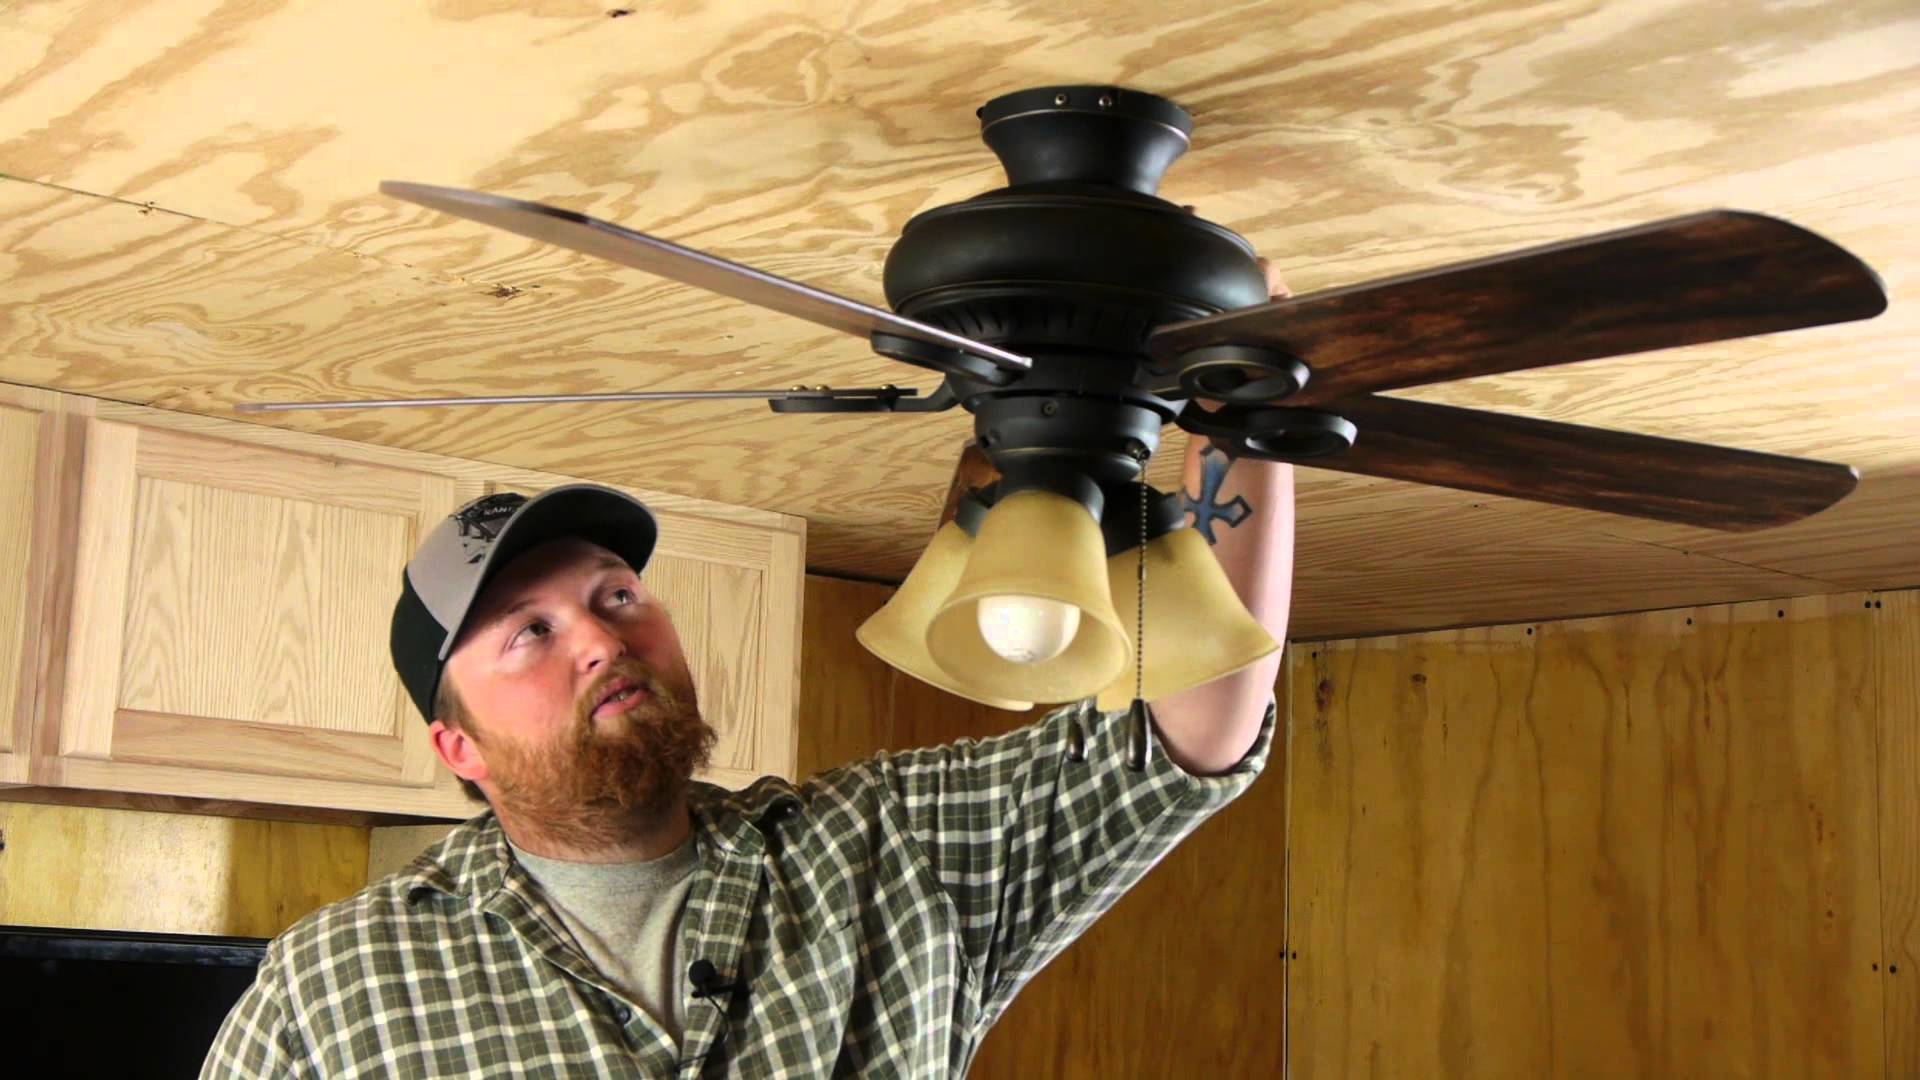 Handyman shares 14 brilliant solutions to common home problems that you've never heard of